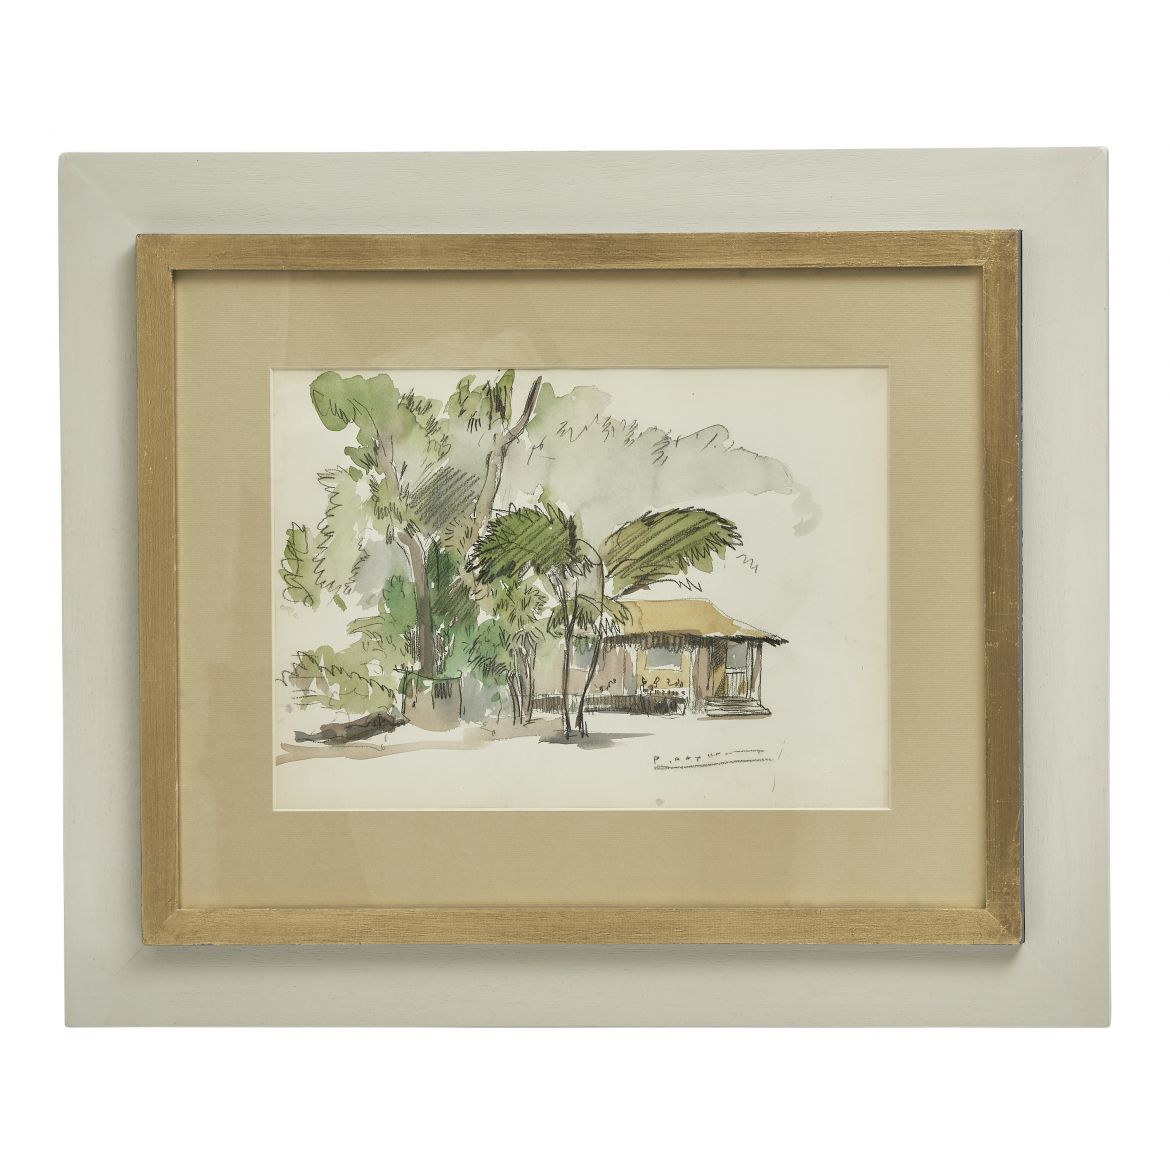 Framed Paul Daxhelet Watercolour